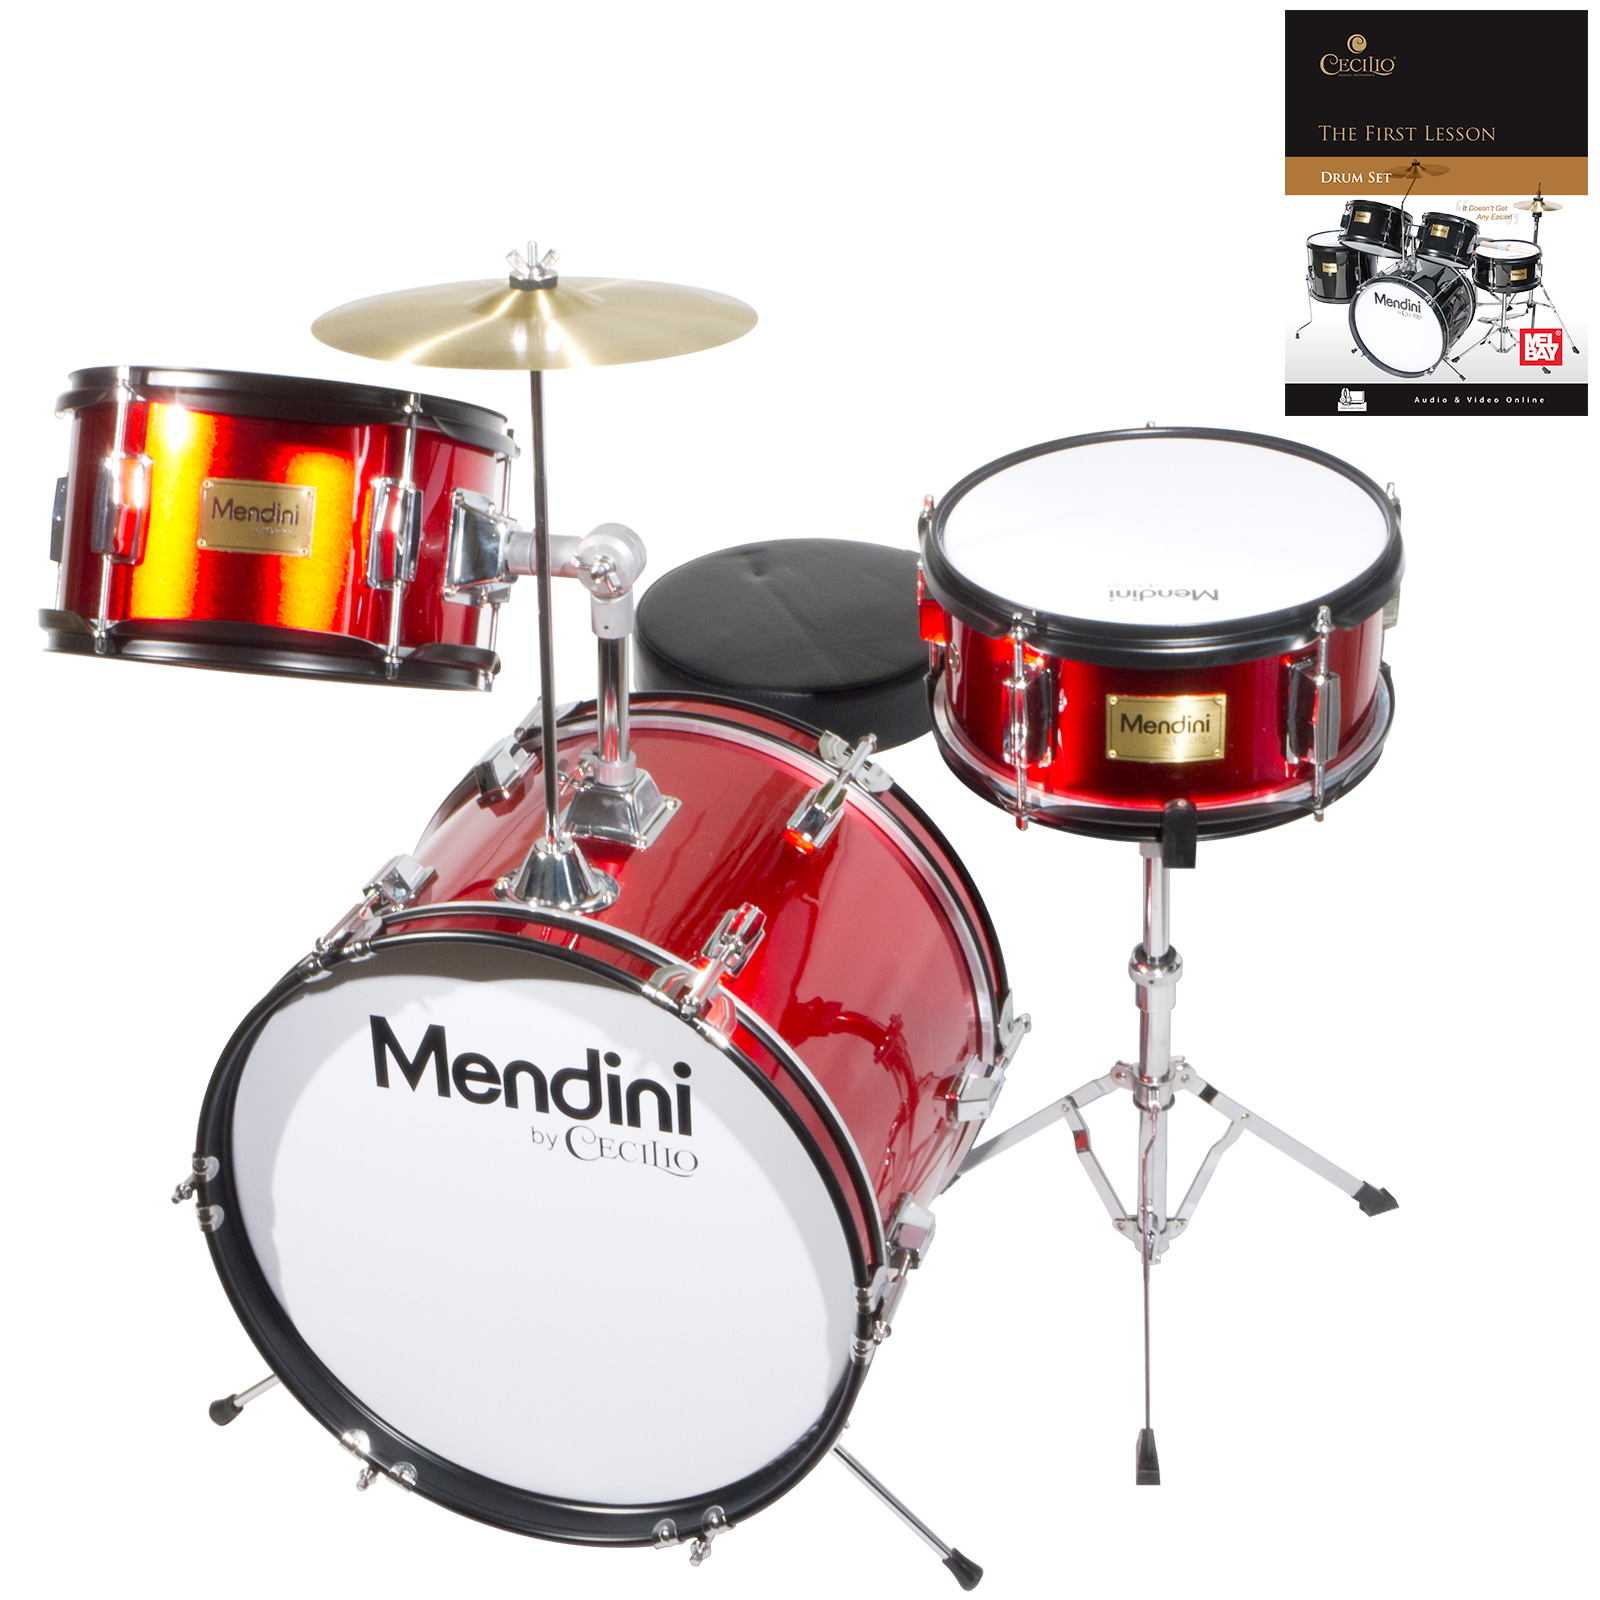 "Mendini by Cecilio 16"" 3-Piece Kids / Junior Drum Set with Adjustable Throne, Cymbal, Pedal, Drumsticks & Lesson Book, Metallic Red, MJDS-3-BR"